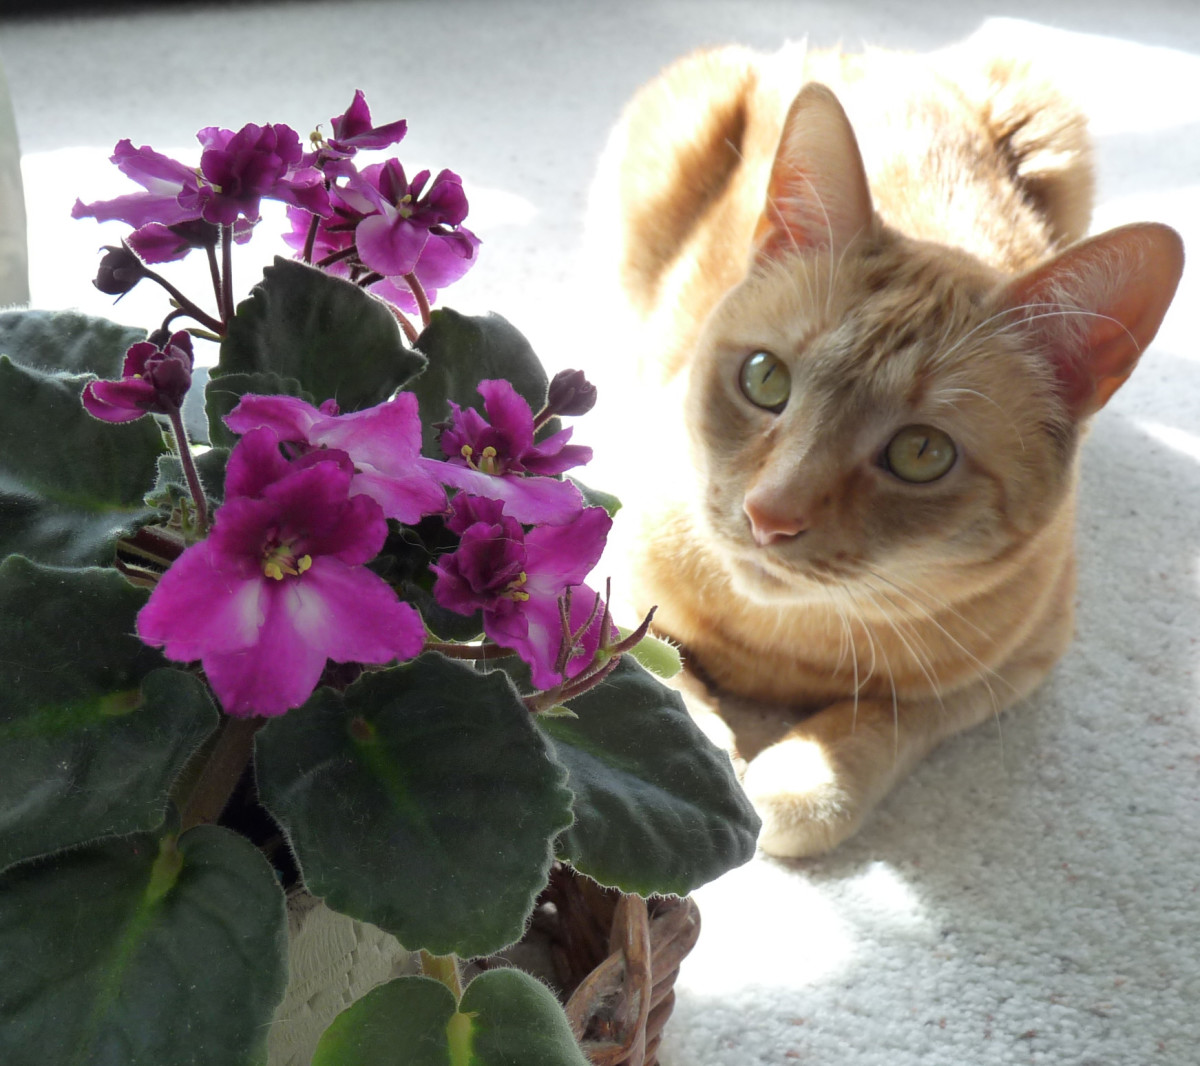 Learn how to choose cat-friendly plants to keep your cat safe.